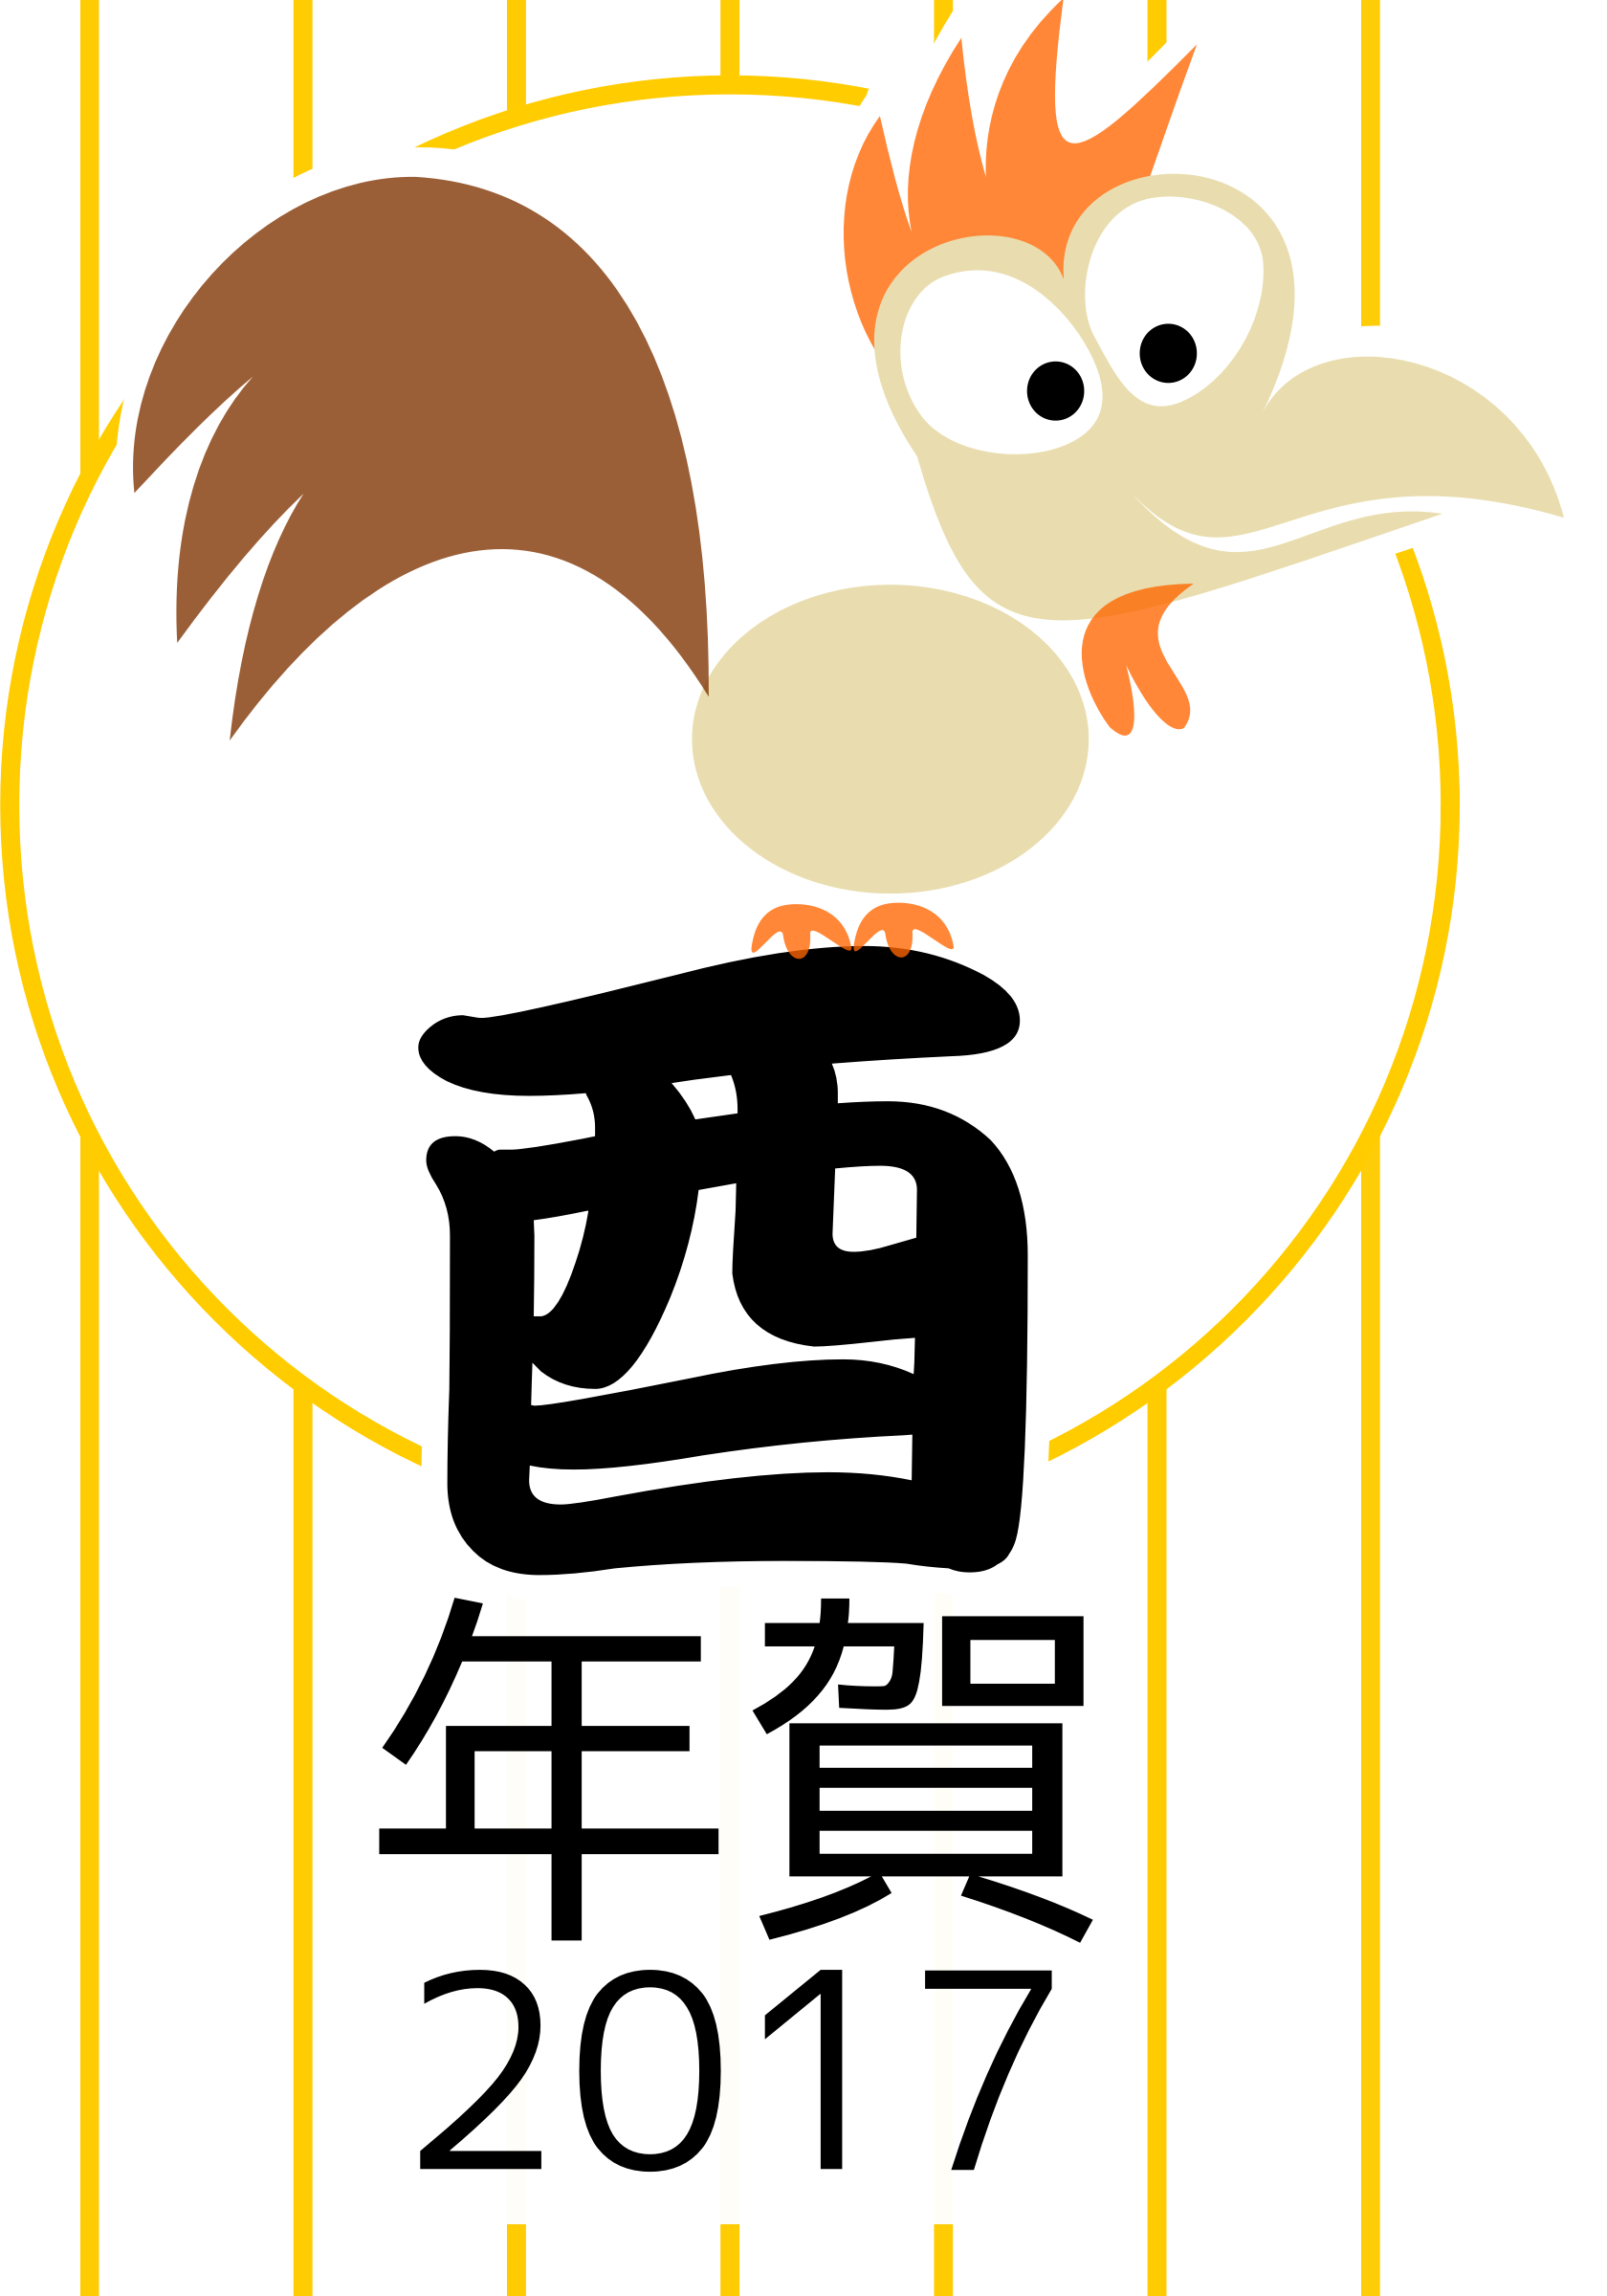 Chinese zodiac rooster - Japanese version - 2017 by uroesch